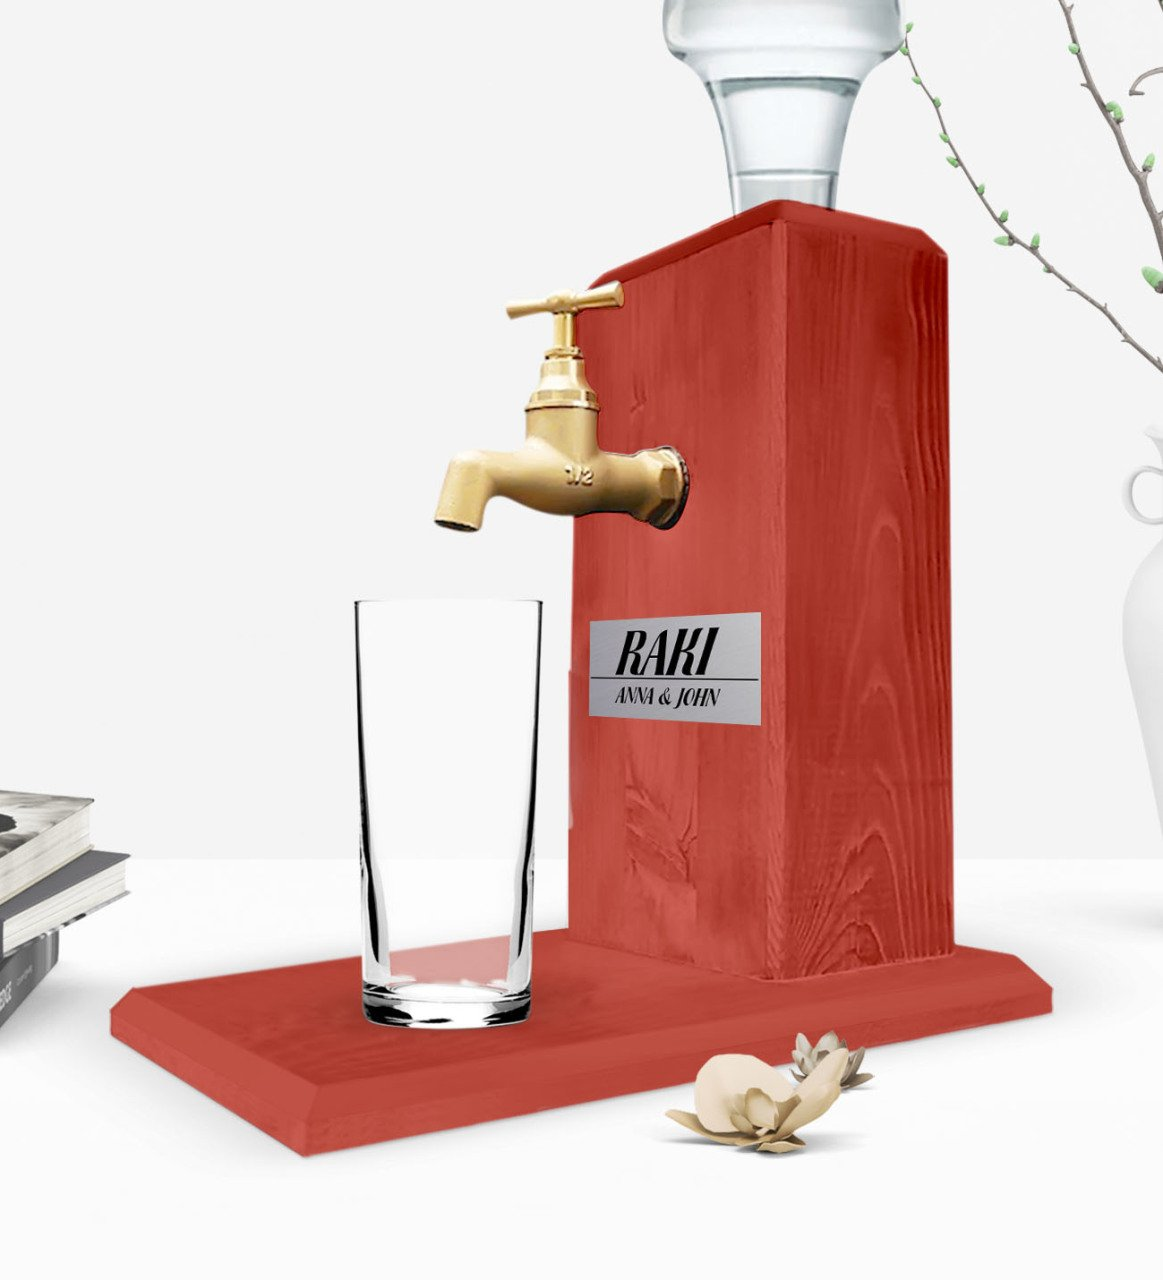 Custom Wooden Natural Rack Stand with Tap - Tile Red